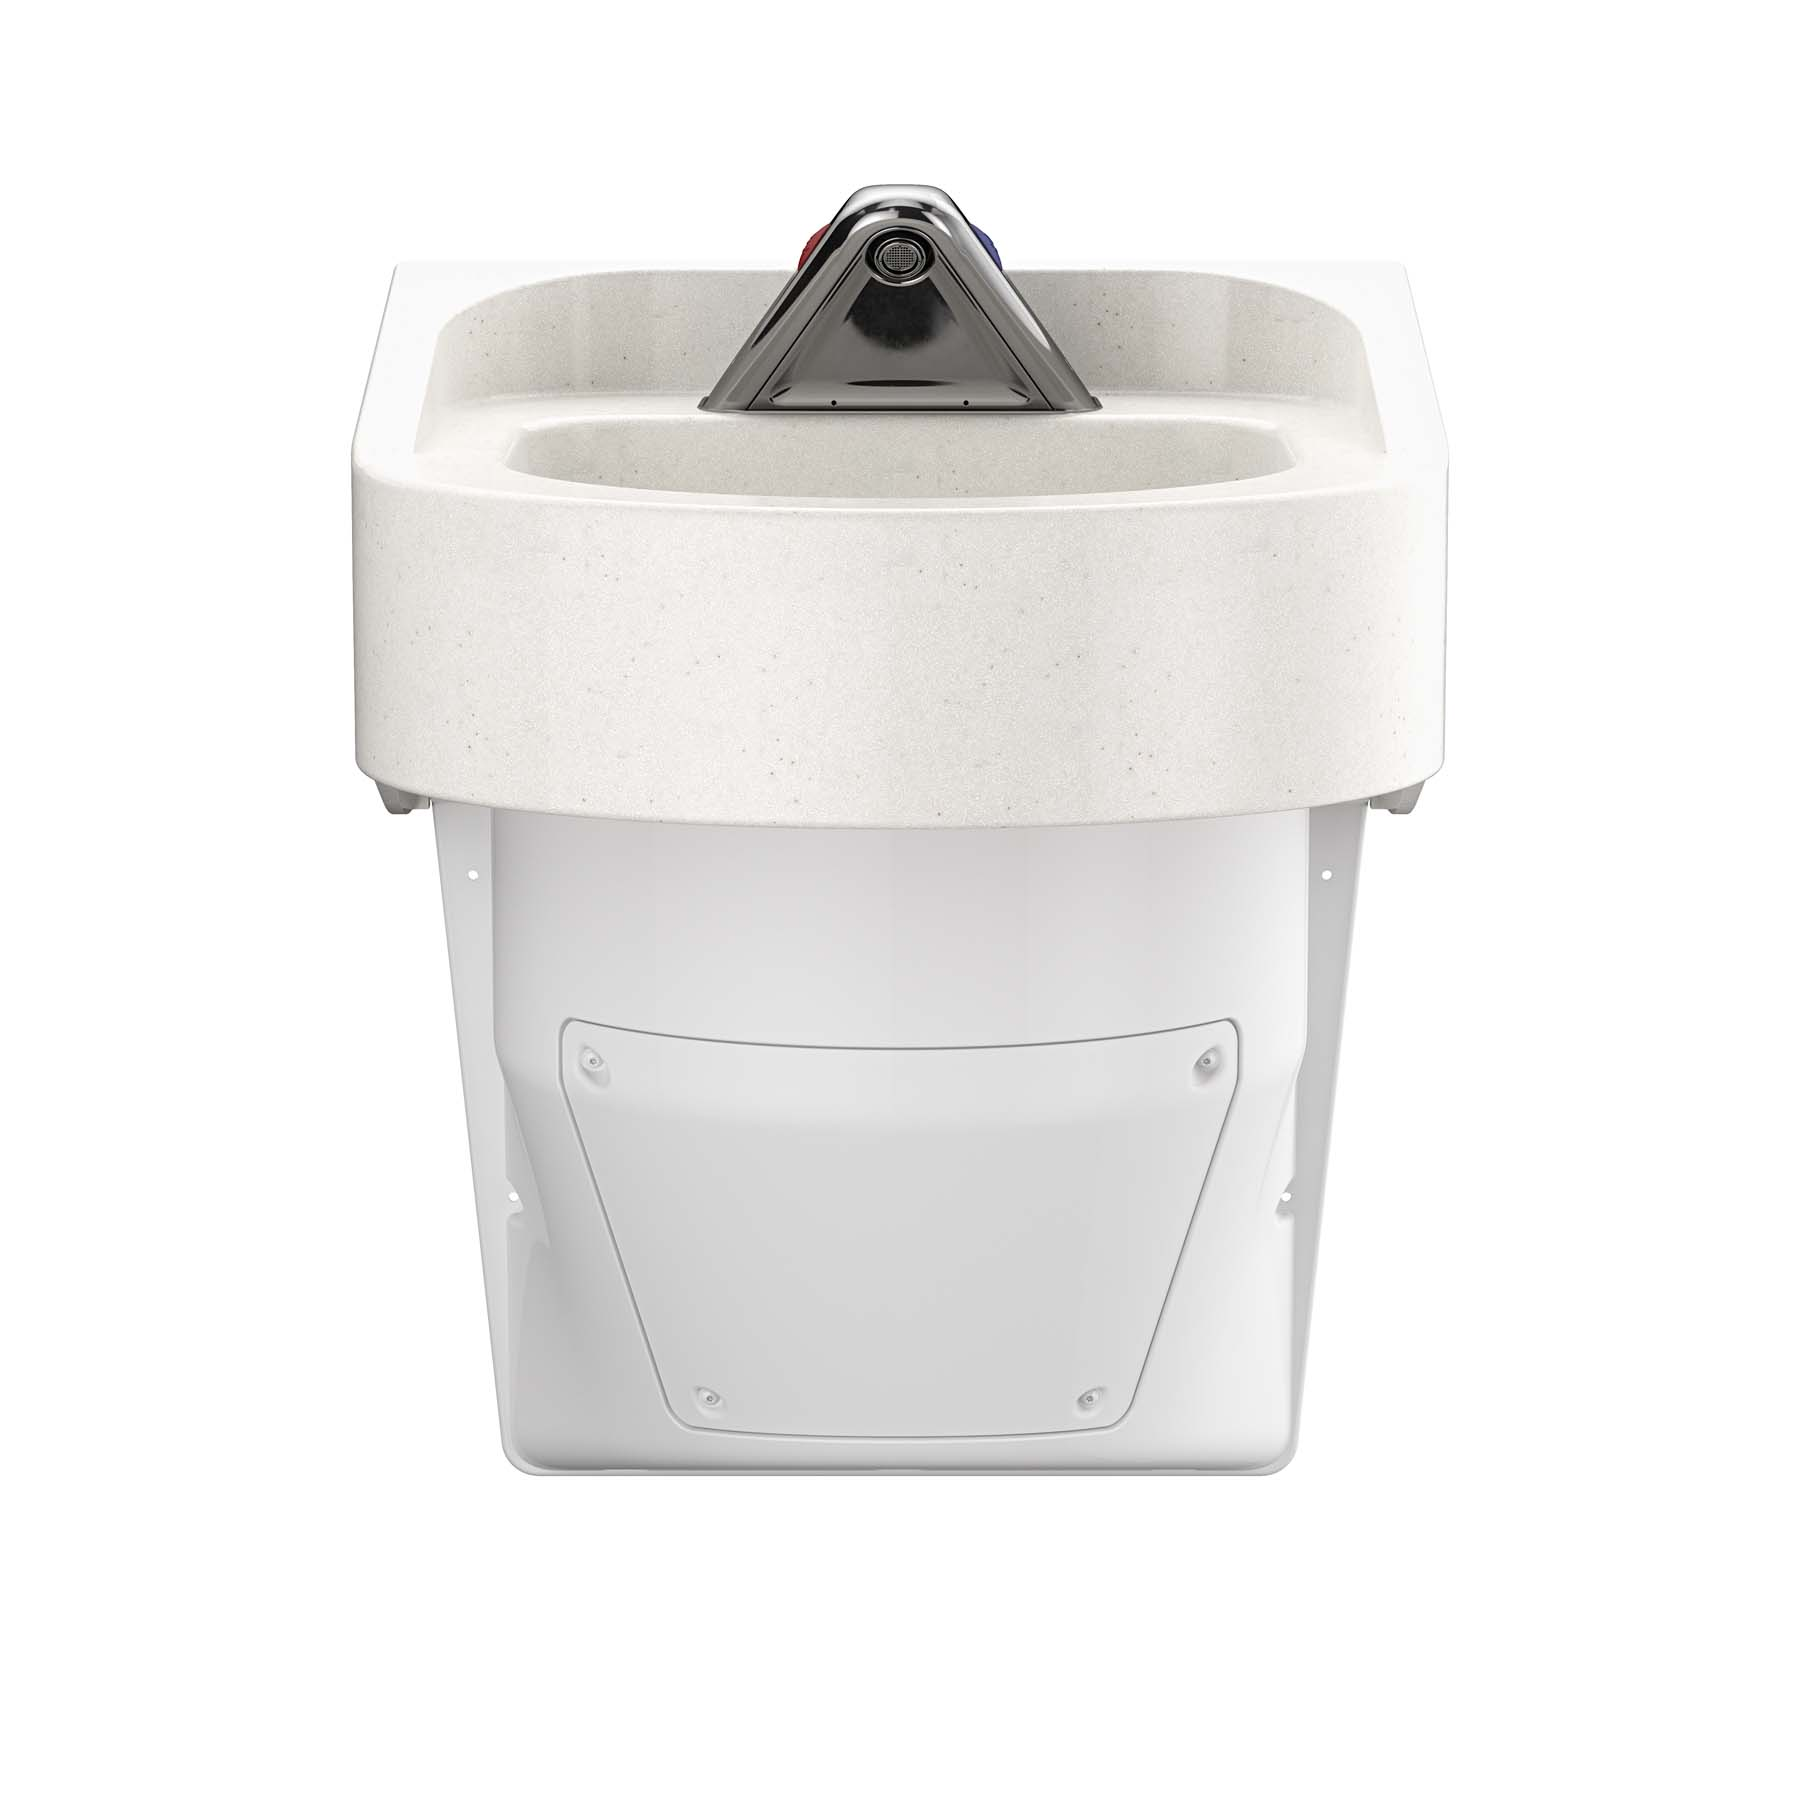 Ligature Resistant Sink and Trap Cover - Front View